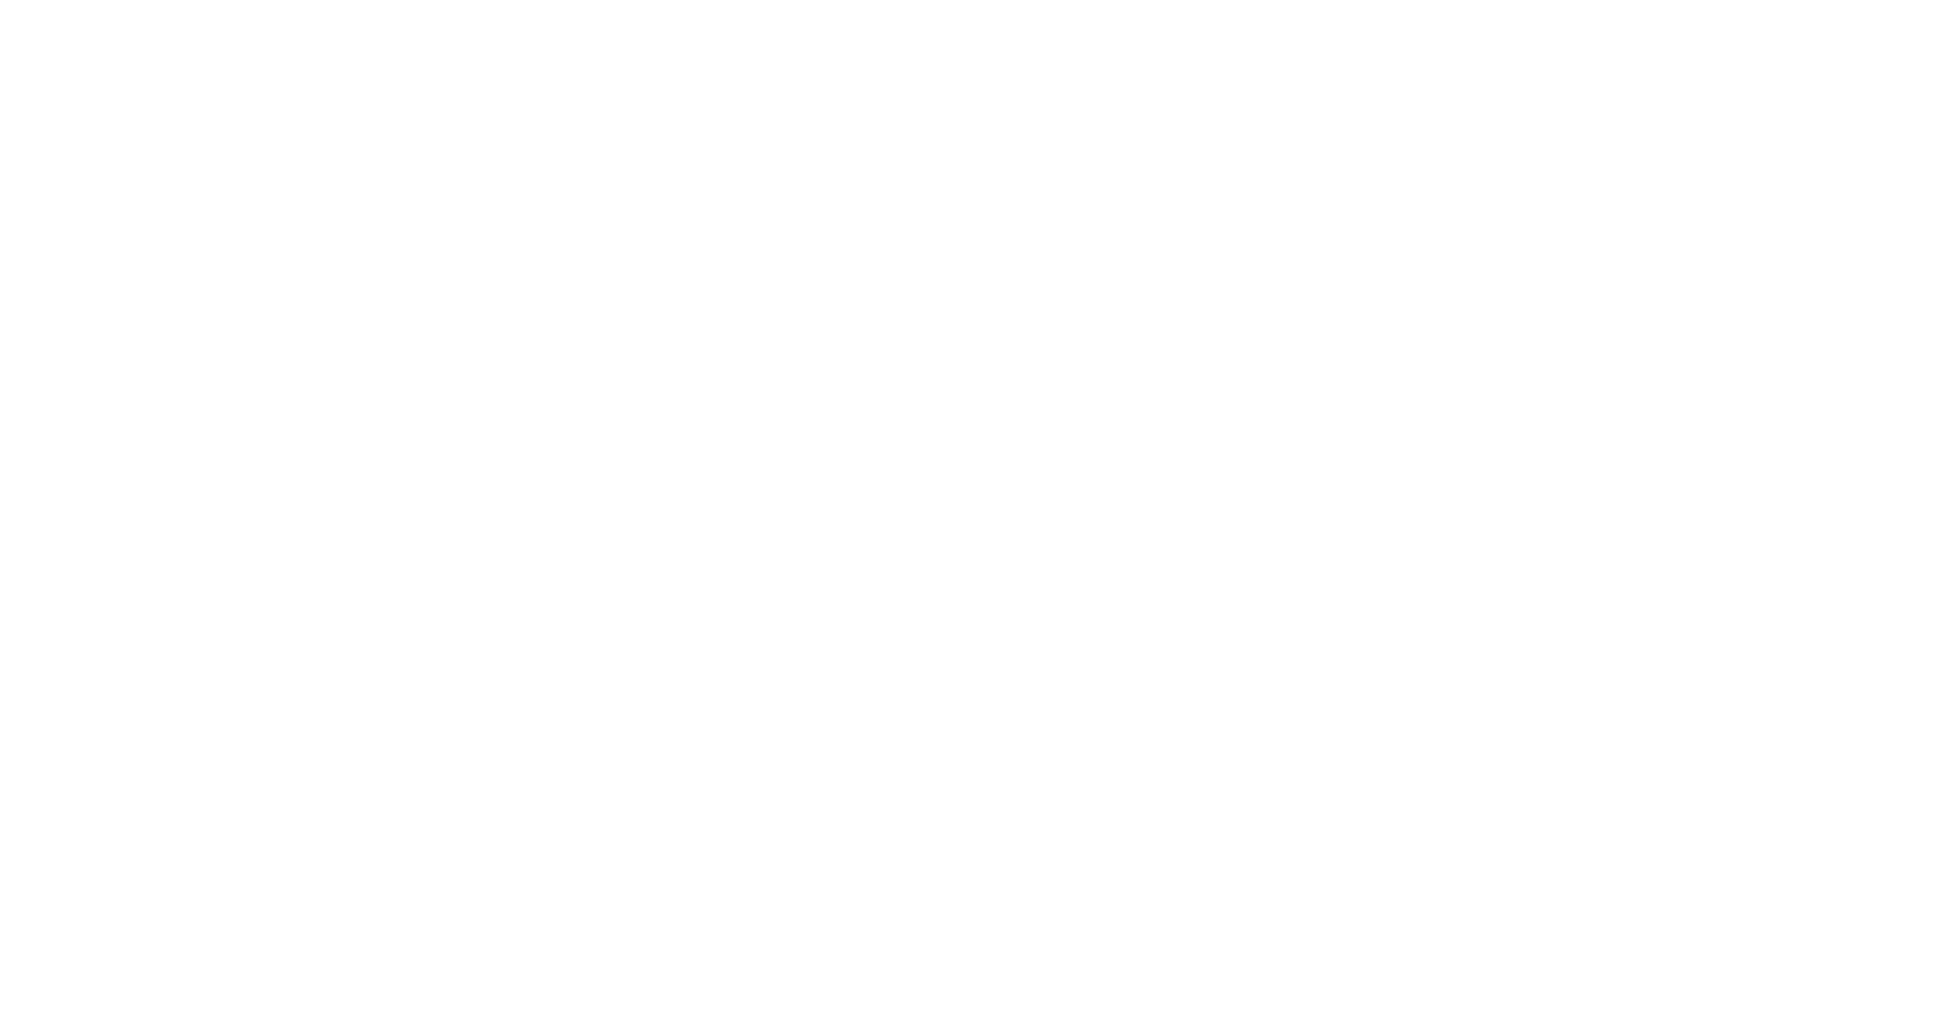 Wish for COMFORT AND JOY